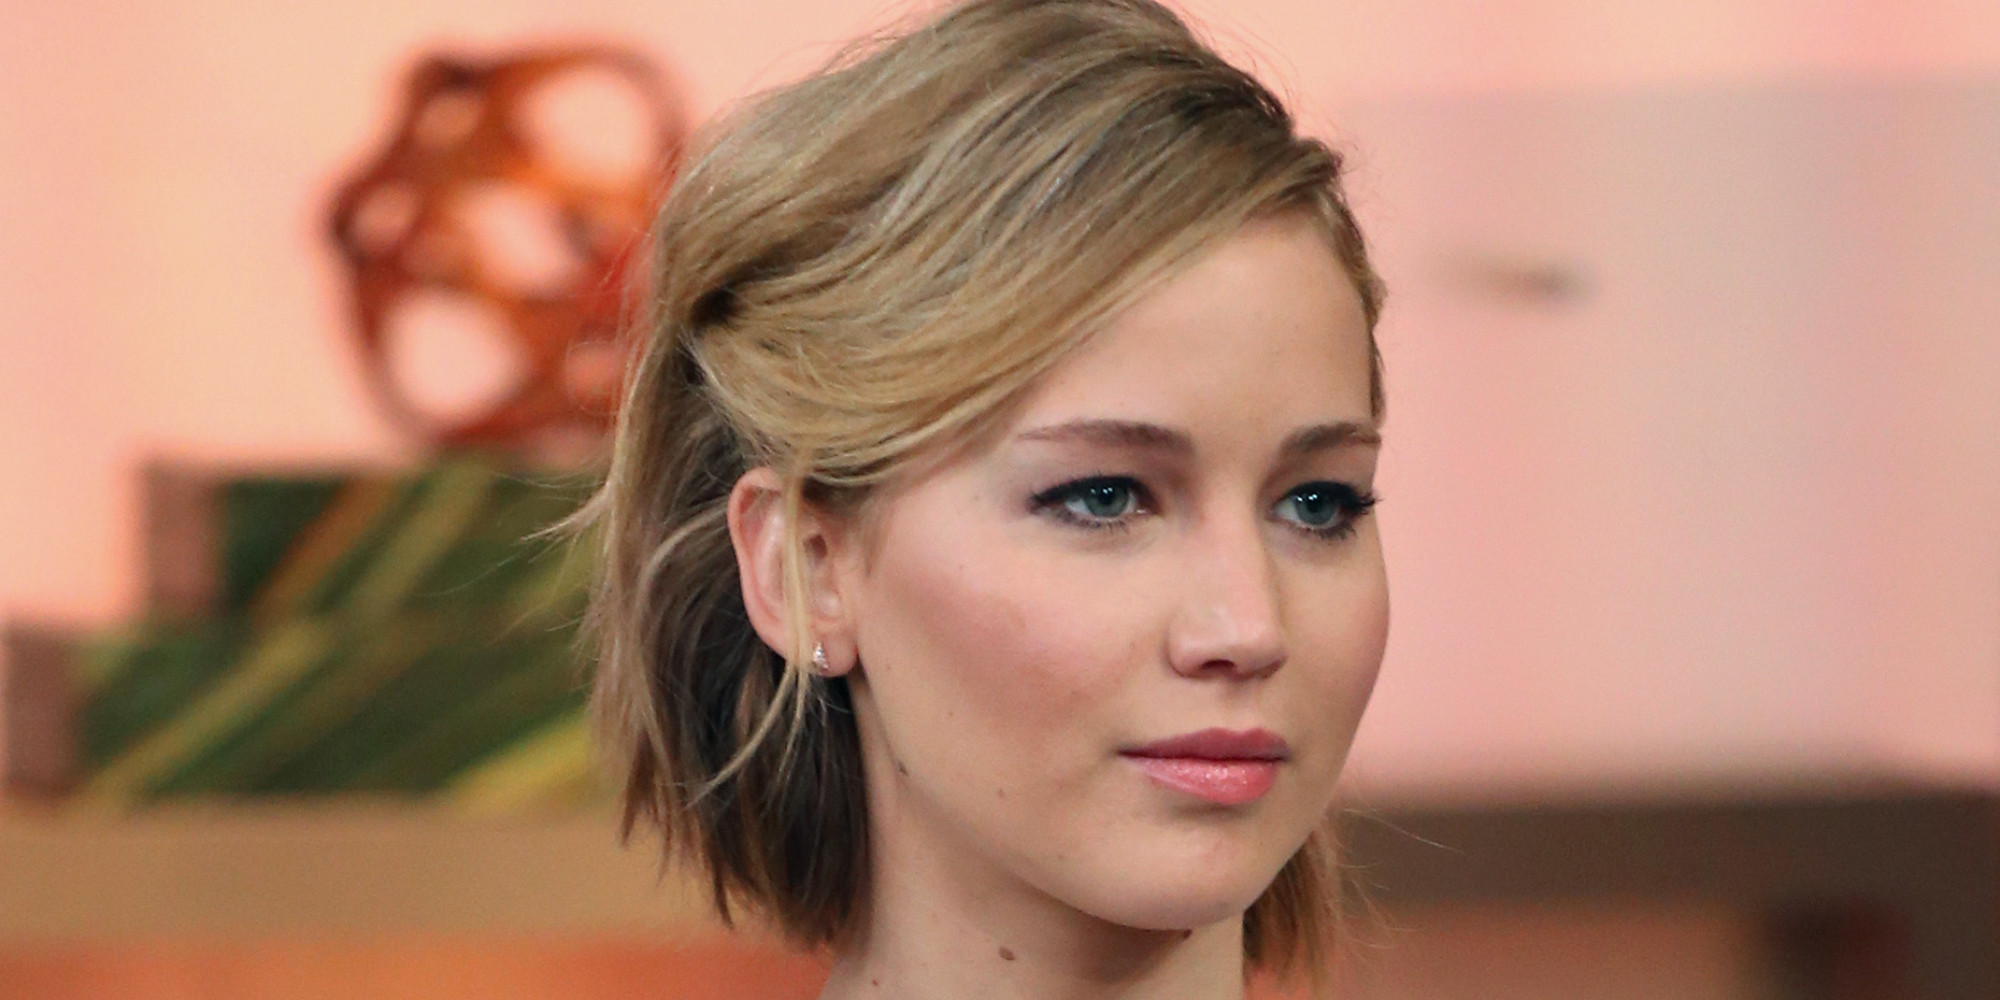 Jennifer Lawrence Wallpapers High Resolution and Quality 2000x1000